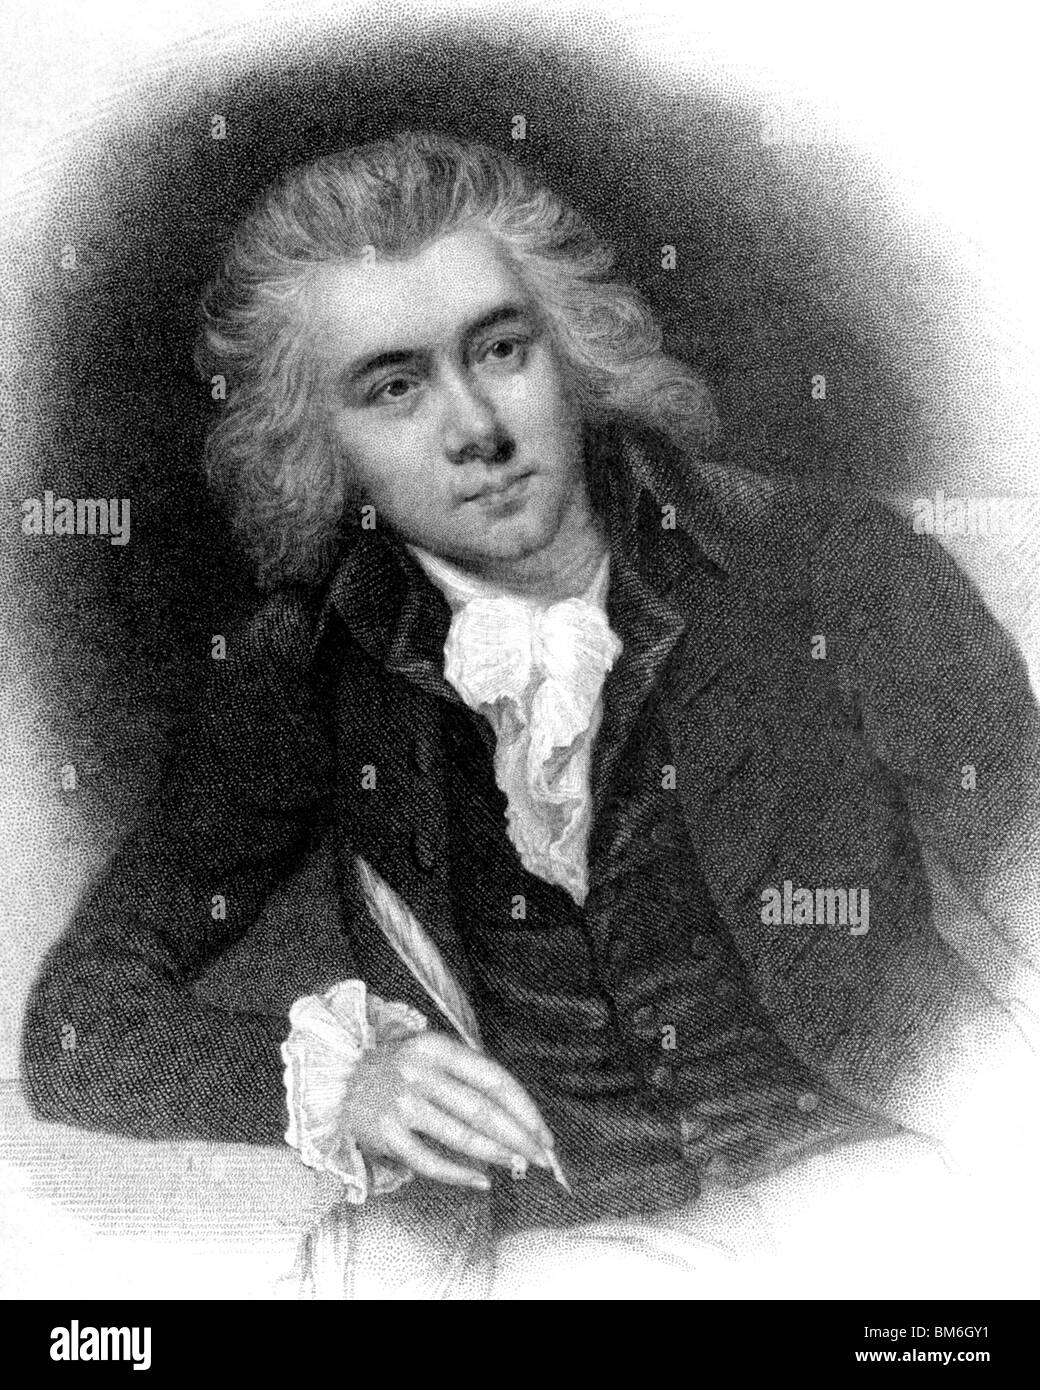 WILLIAM WILBERFORCE  English philanthropist and reformer (1759-1833) aged 29 - Stock Image